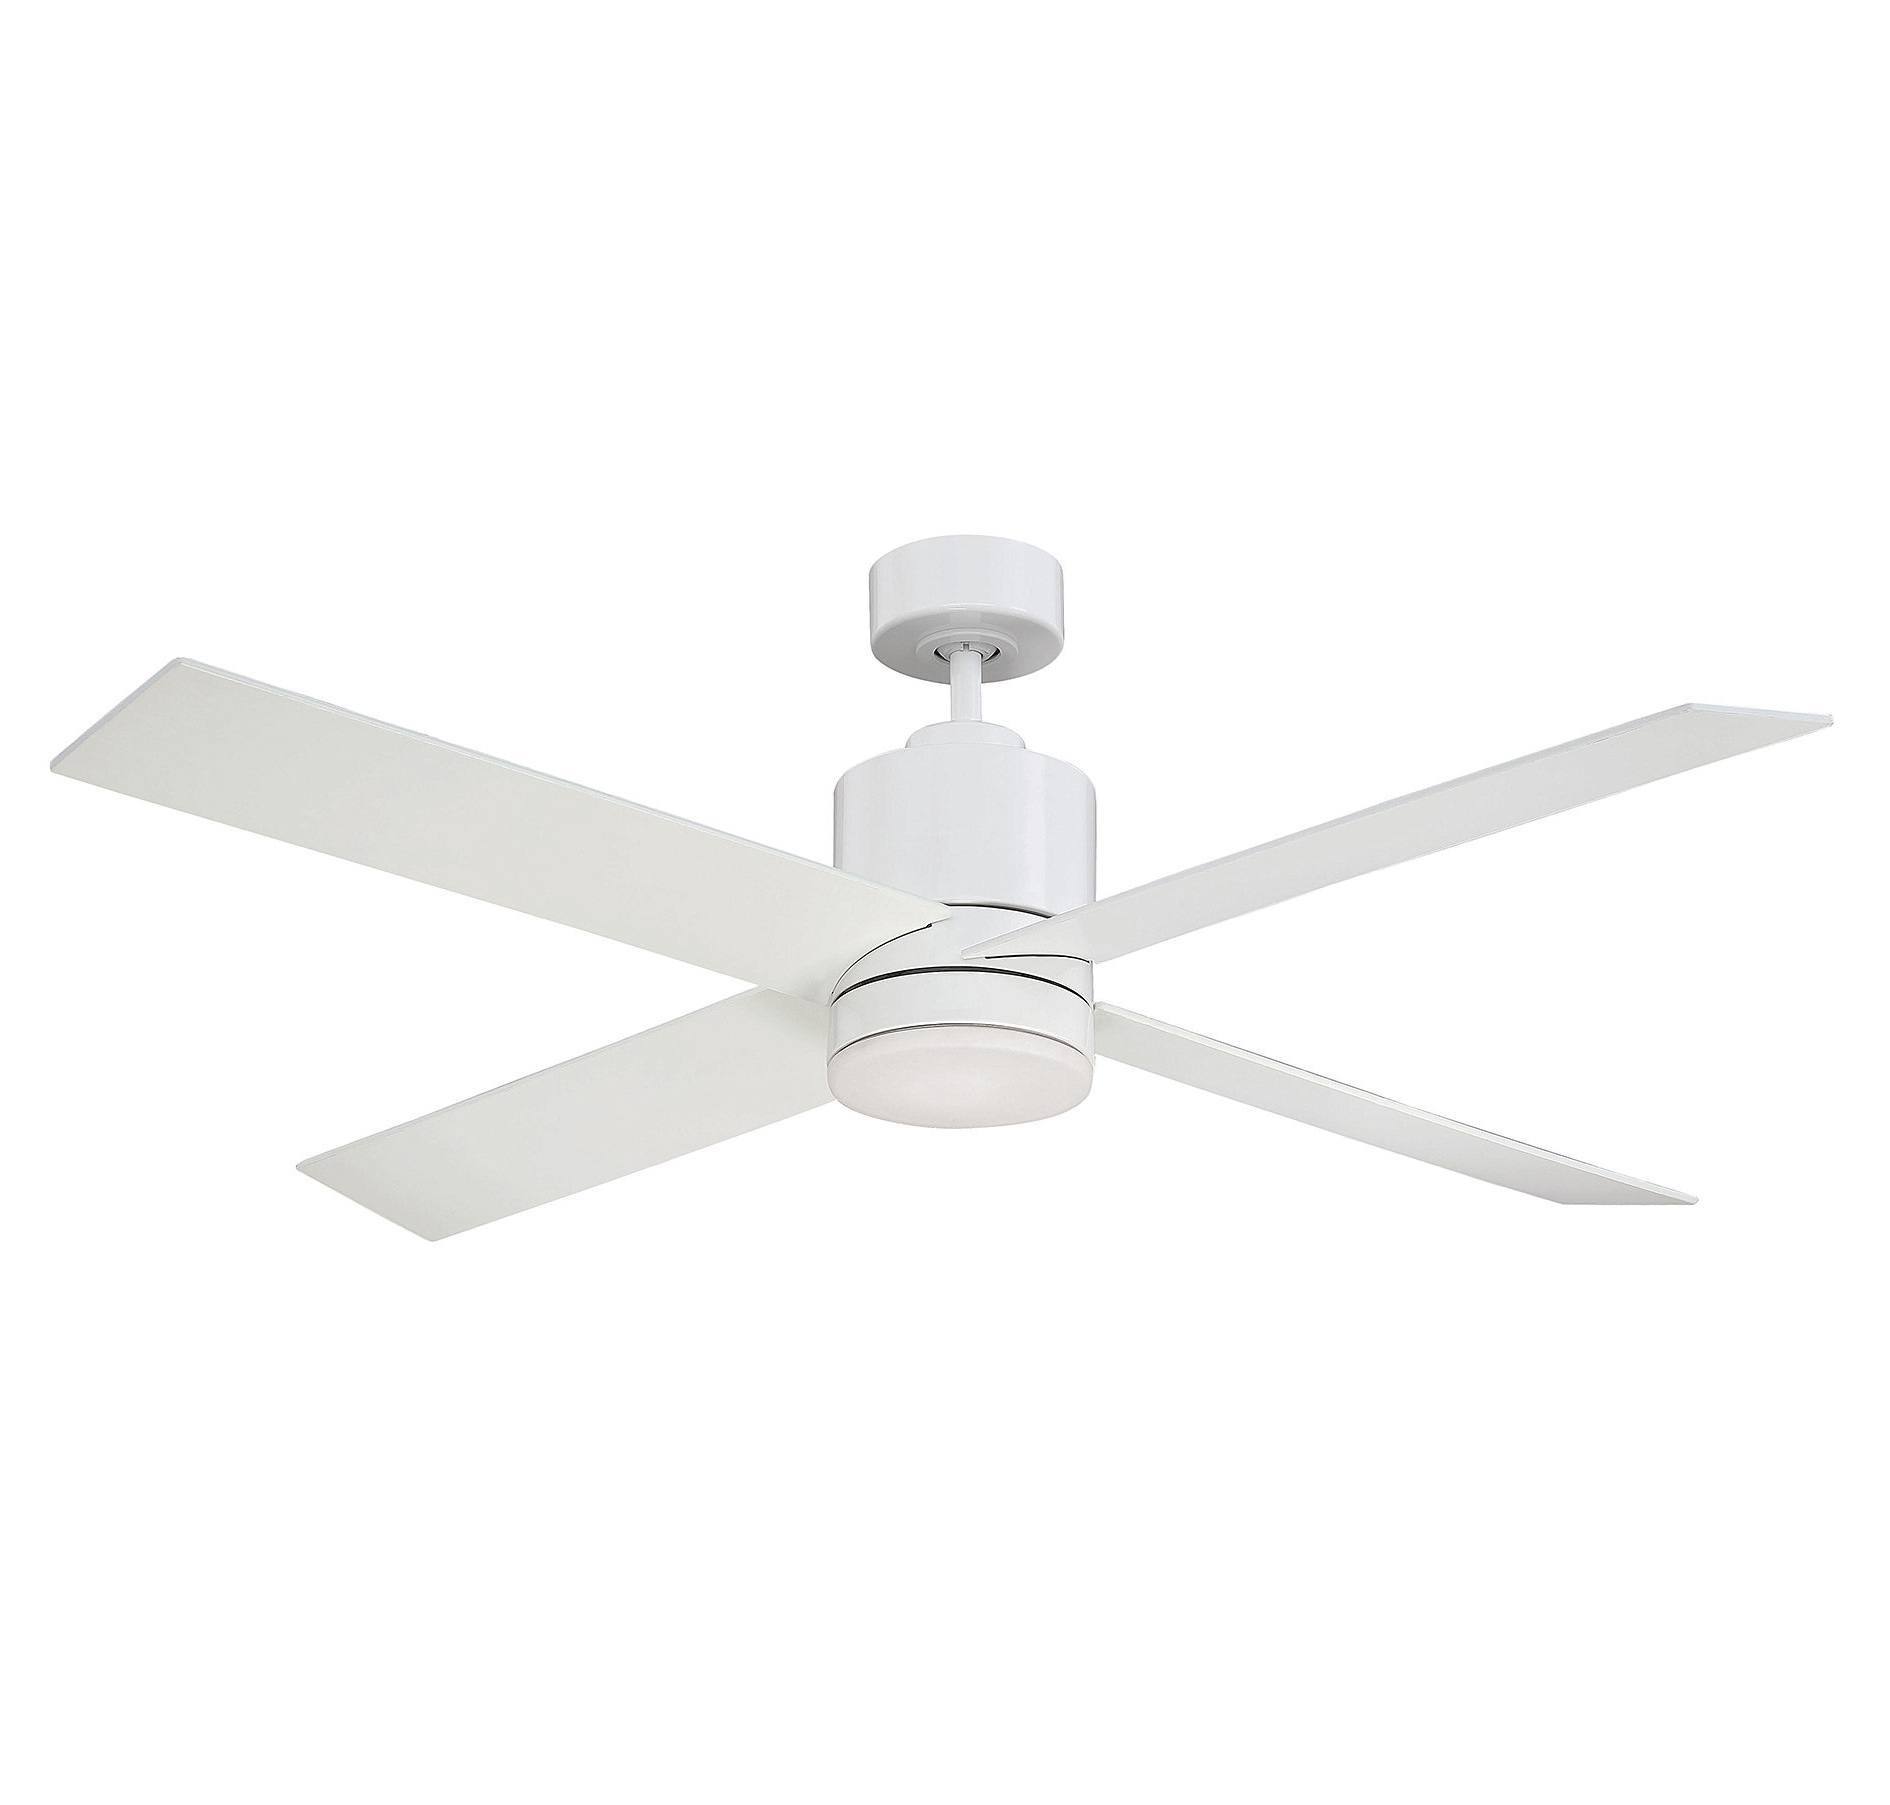 "Favorite 52"" Rinke 4 Blade Ceiling Fan With Remote, Light Kit Included Throughout Aker 3 Blade Led Ceiling Fans (View 13 of 20)"